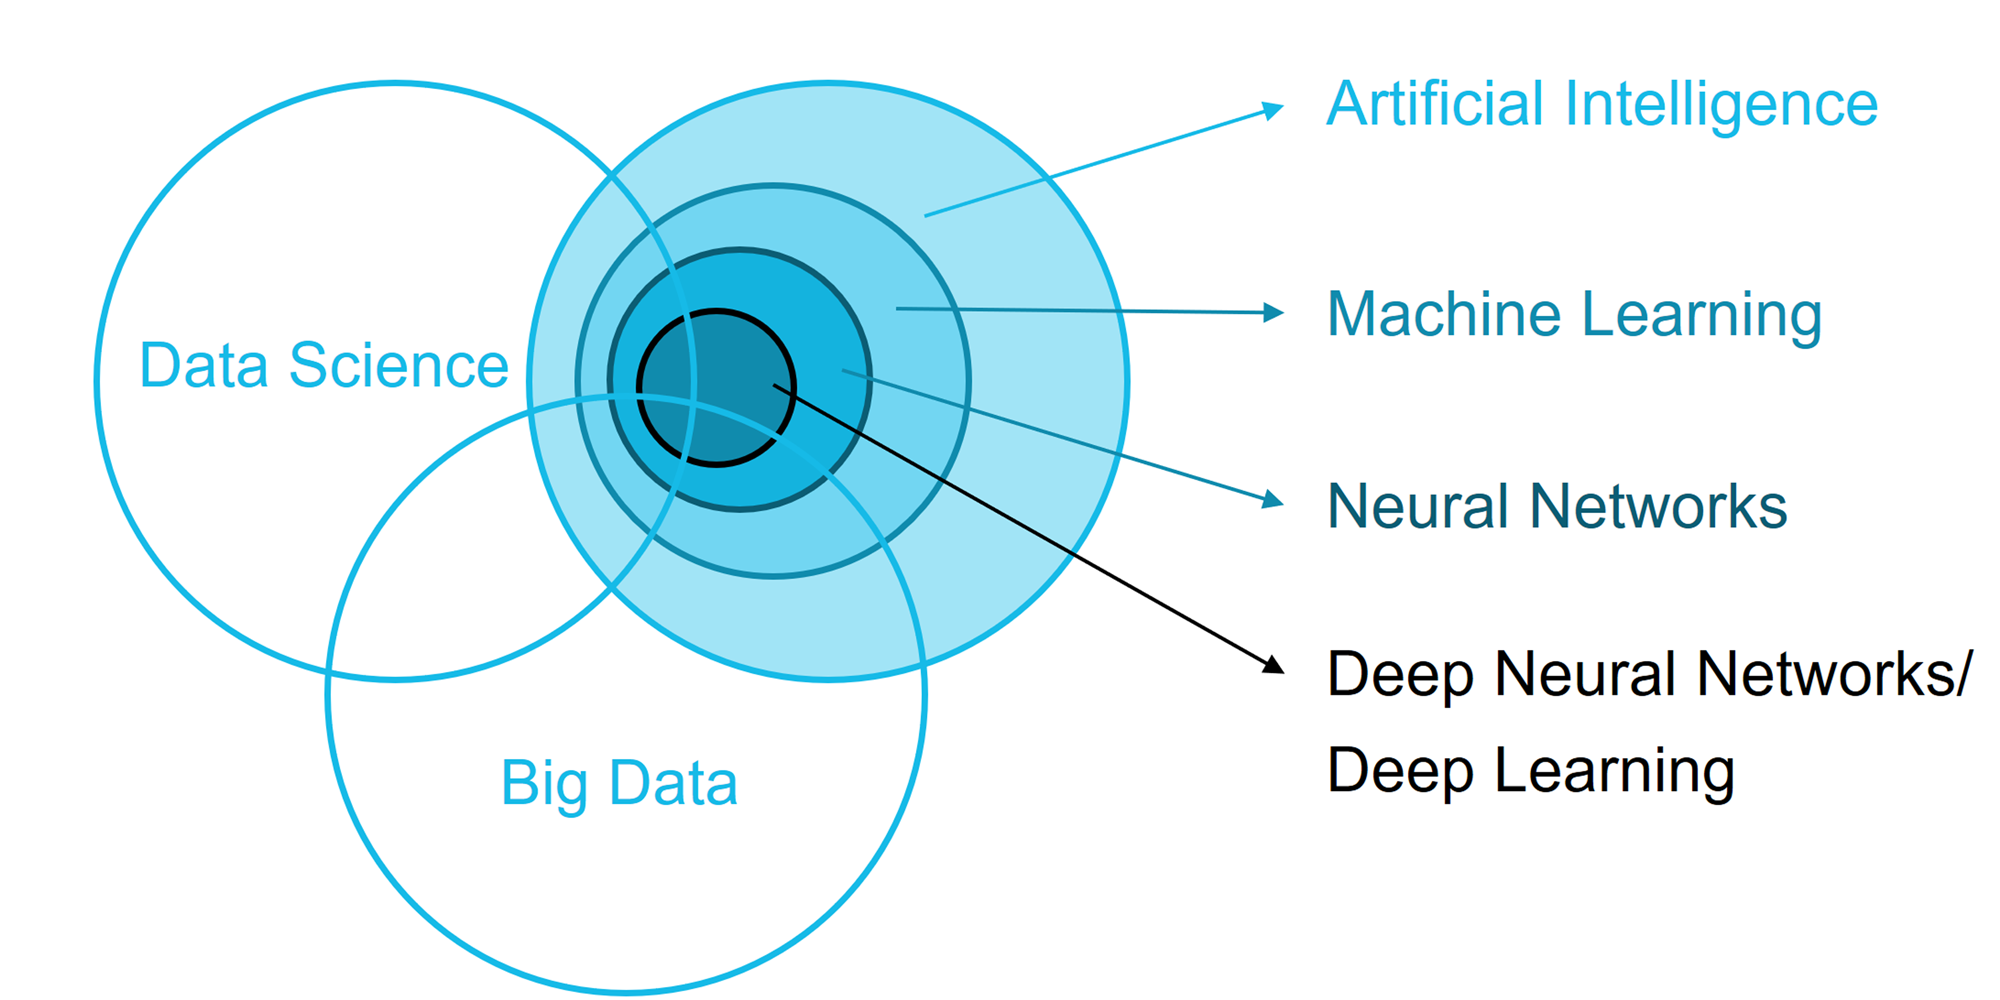 Figure 6. Convergence of Artificial Intelligence, Machine Learning and Data Science